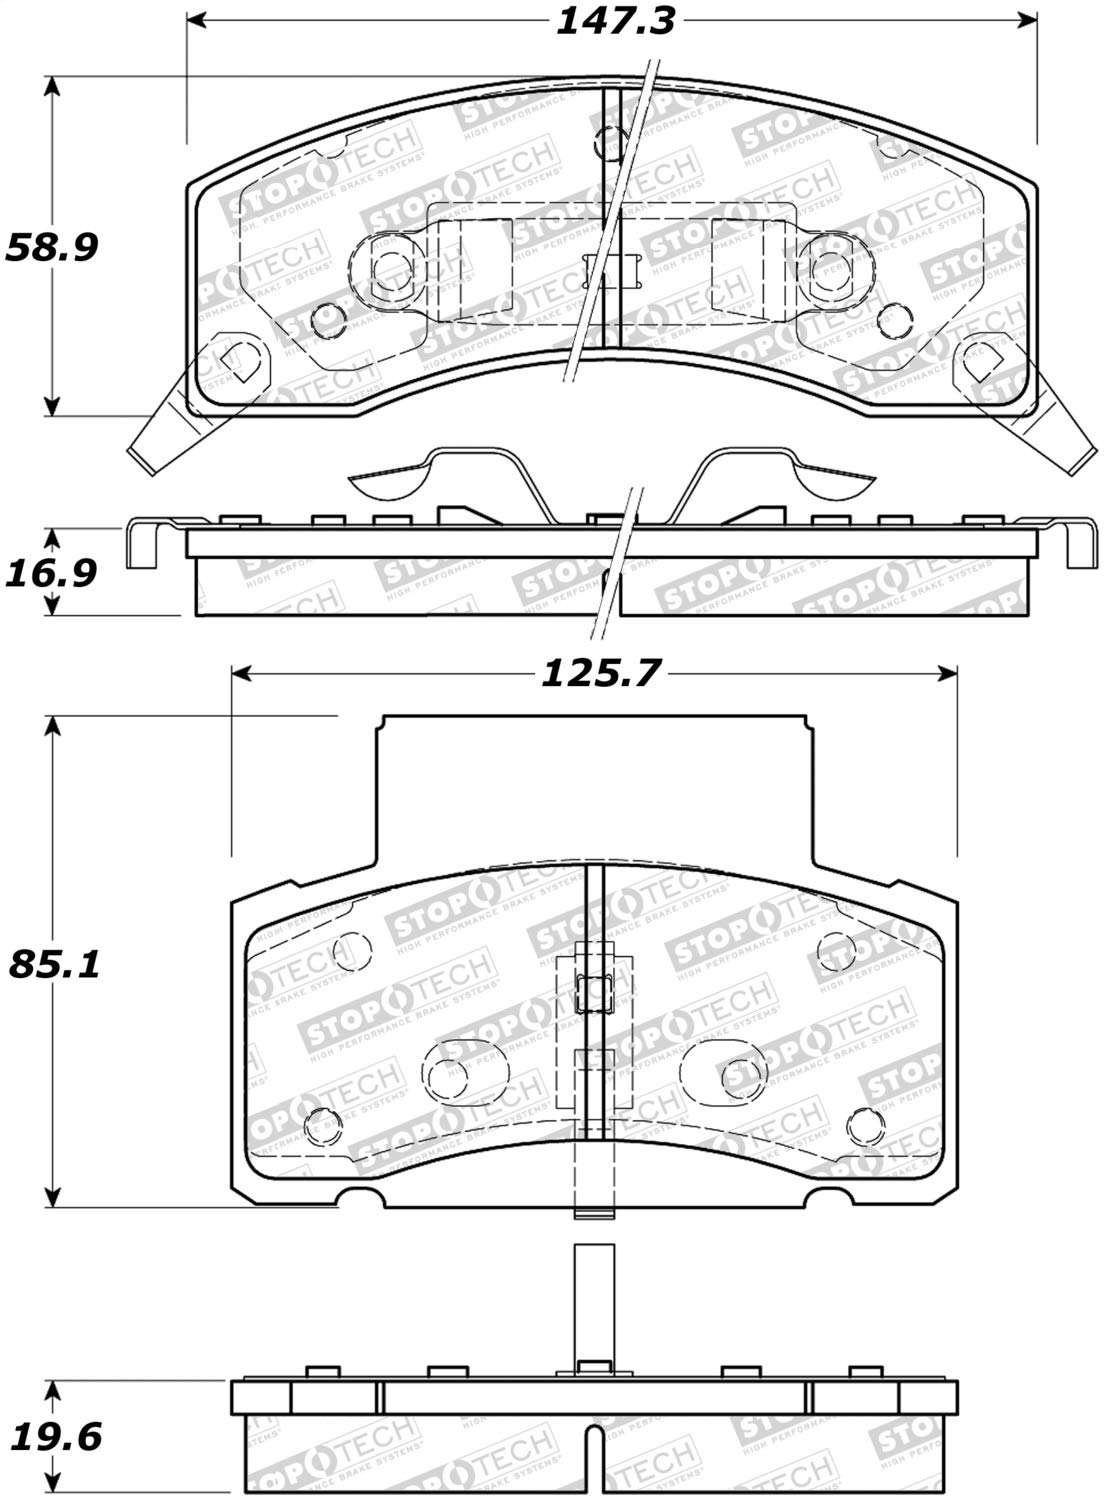 StopTech 308.04590 Street Brake Pads; Front with Shims and Hardware